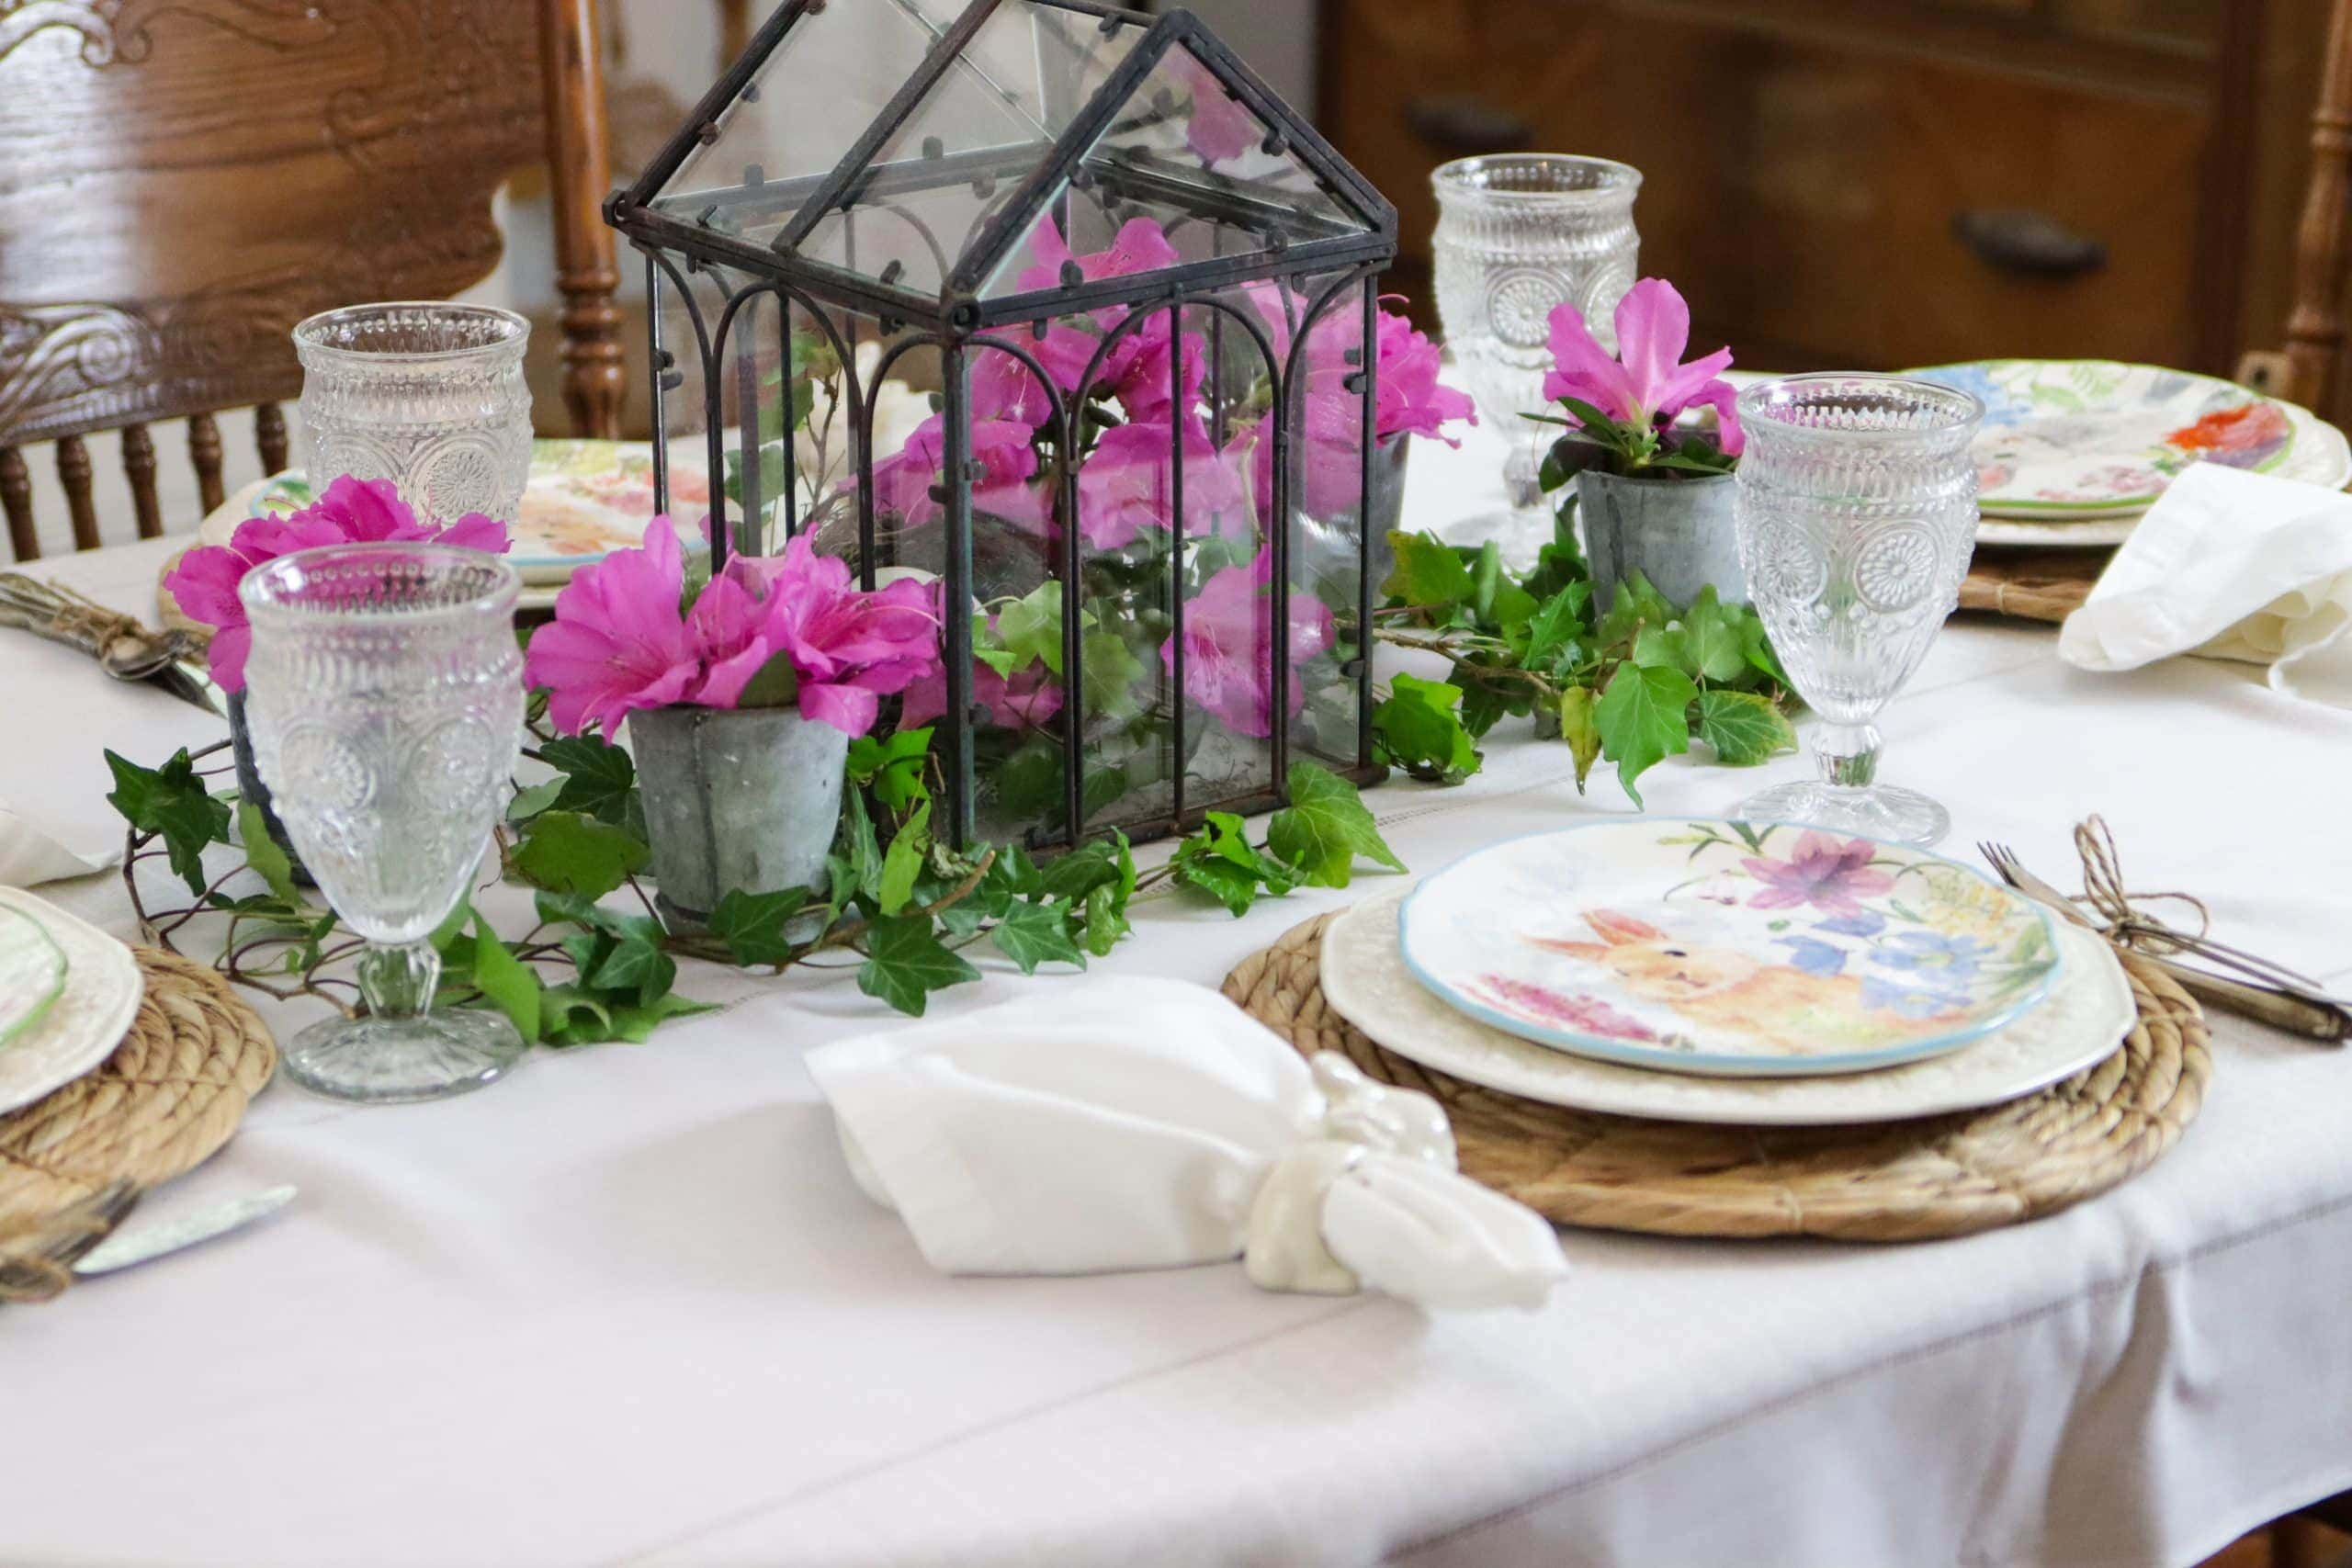 spring table setting showing bunny napkin rings white table cloth white napkins bunny plates